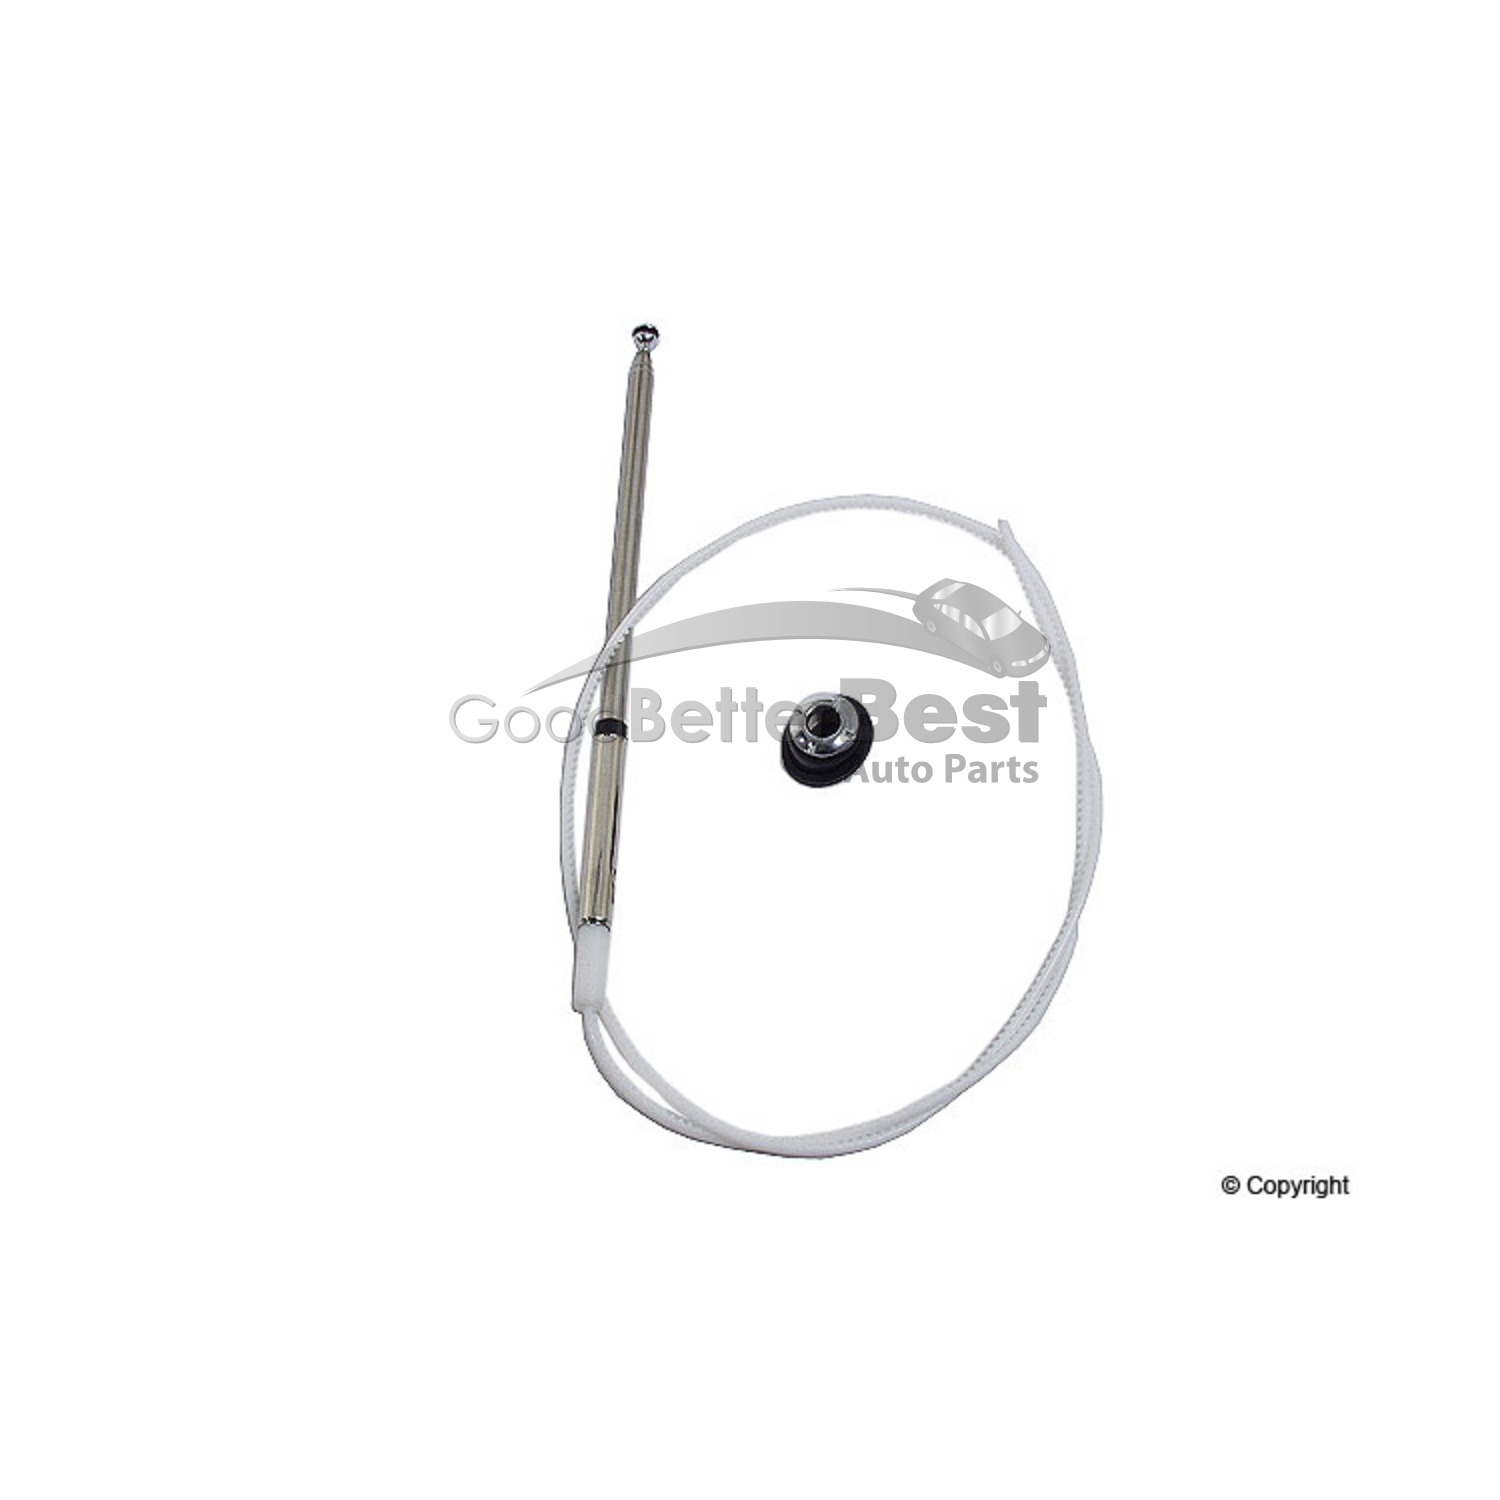 One New MTC Antenna Mast 8500 39177SM4305 for Honda